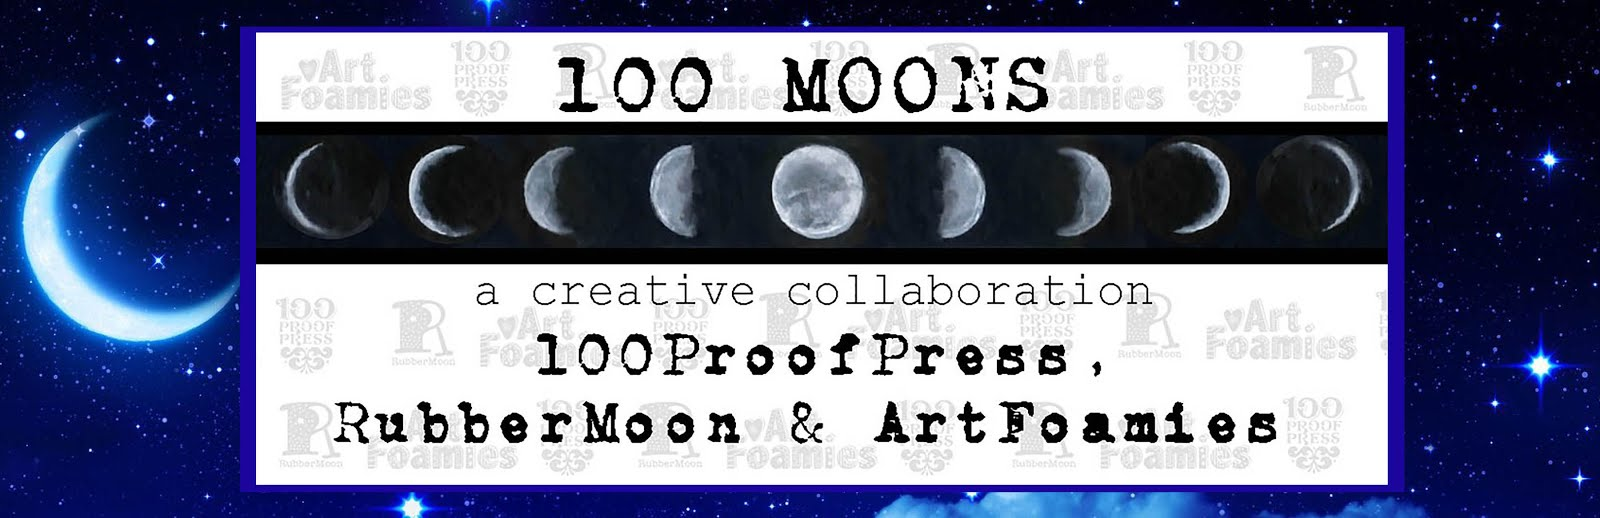 100 Moons Creative Collaboration